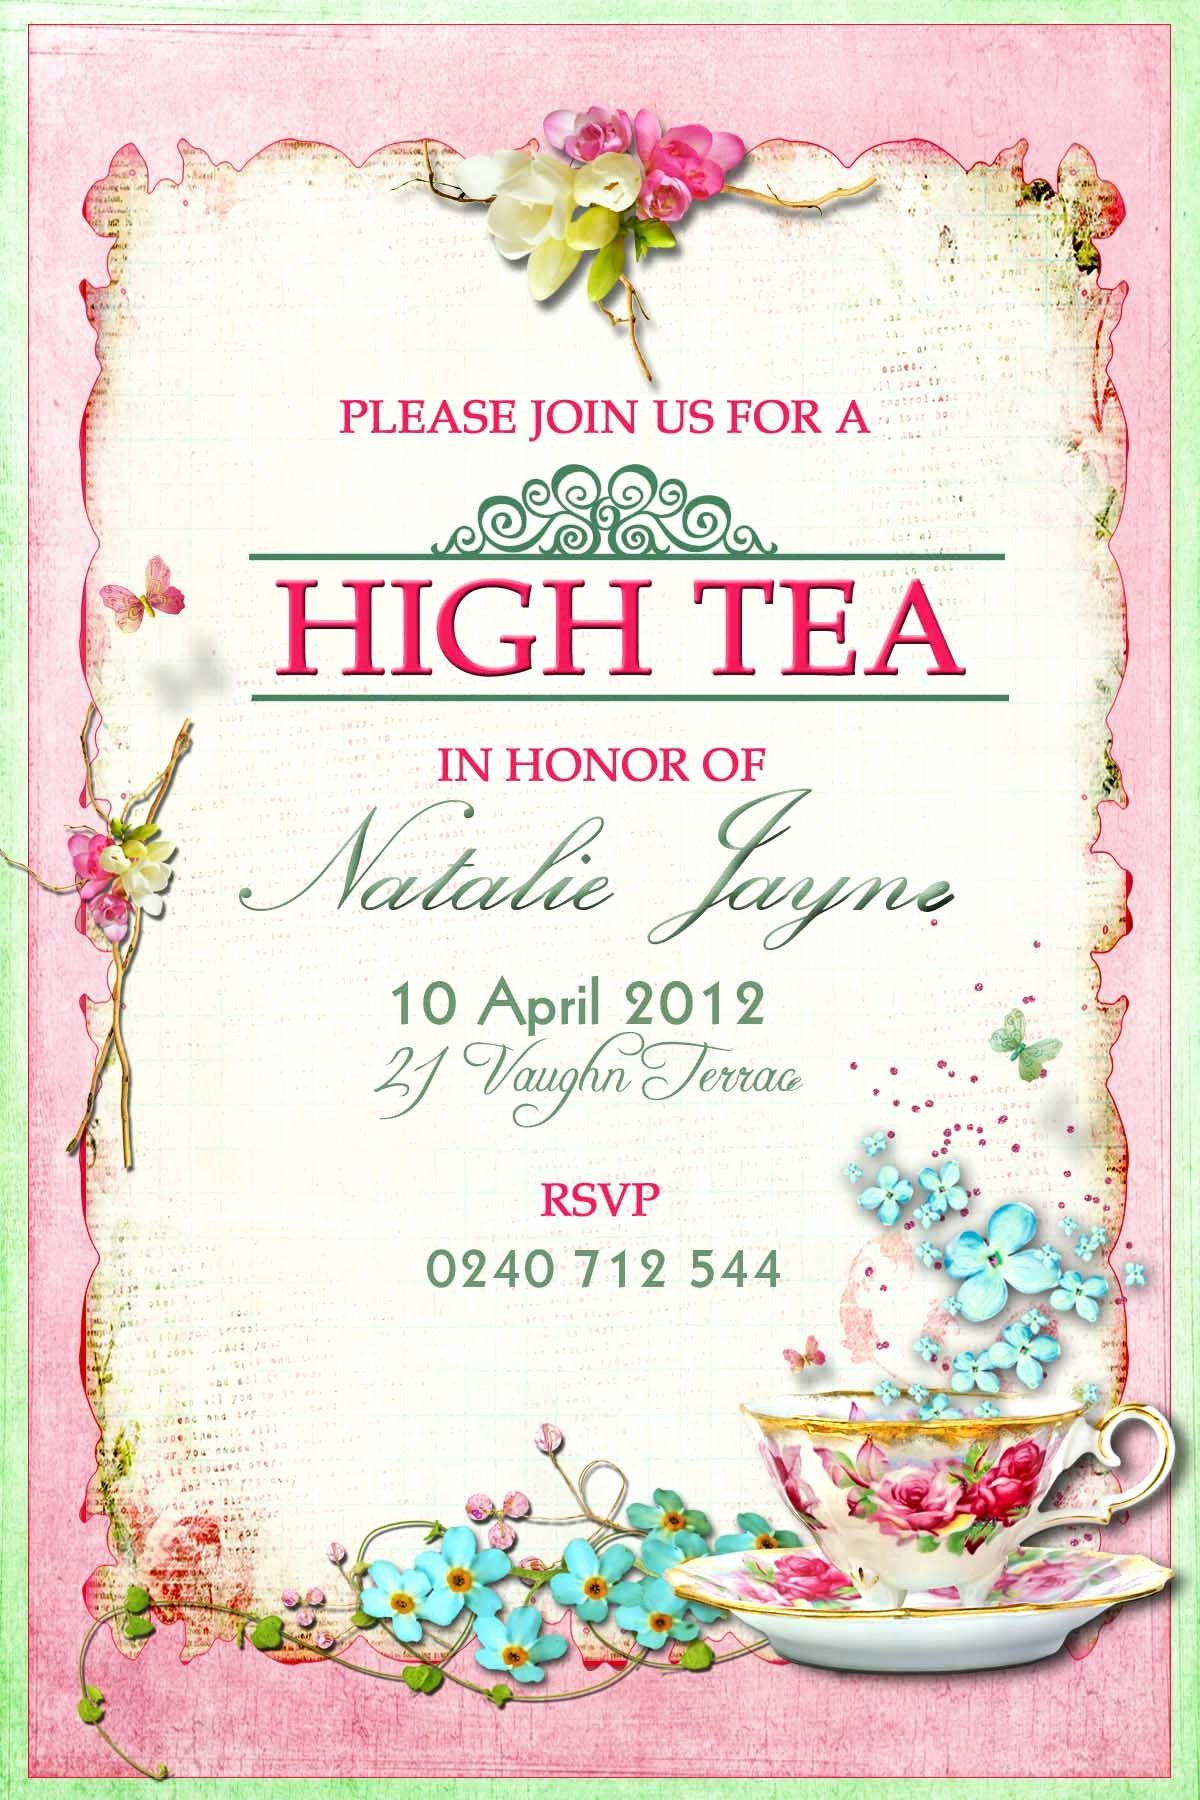 Tea Party Invite Template New Victorian High Tea Party Invitations Surprise Party